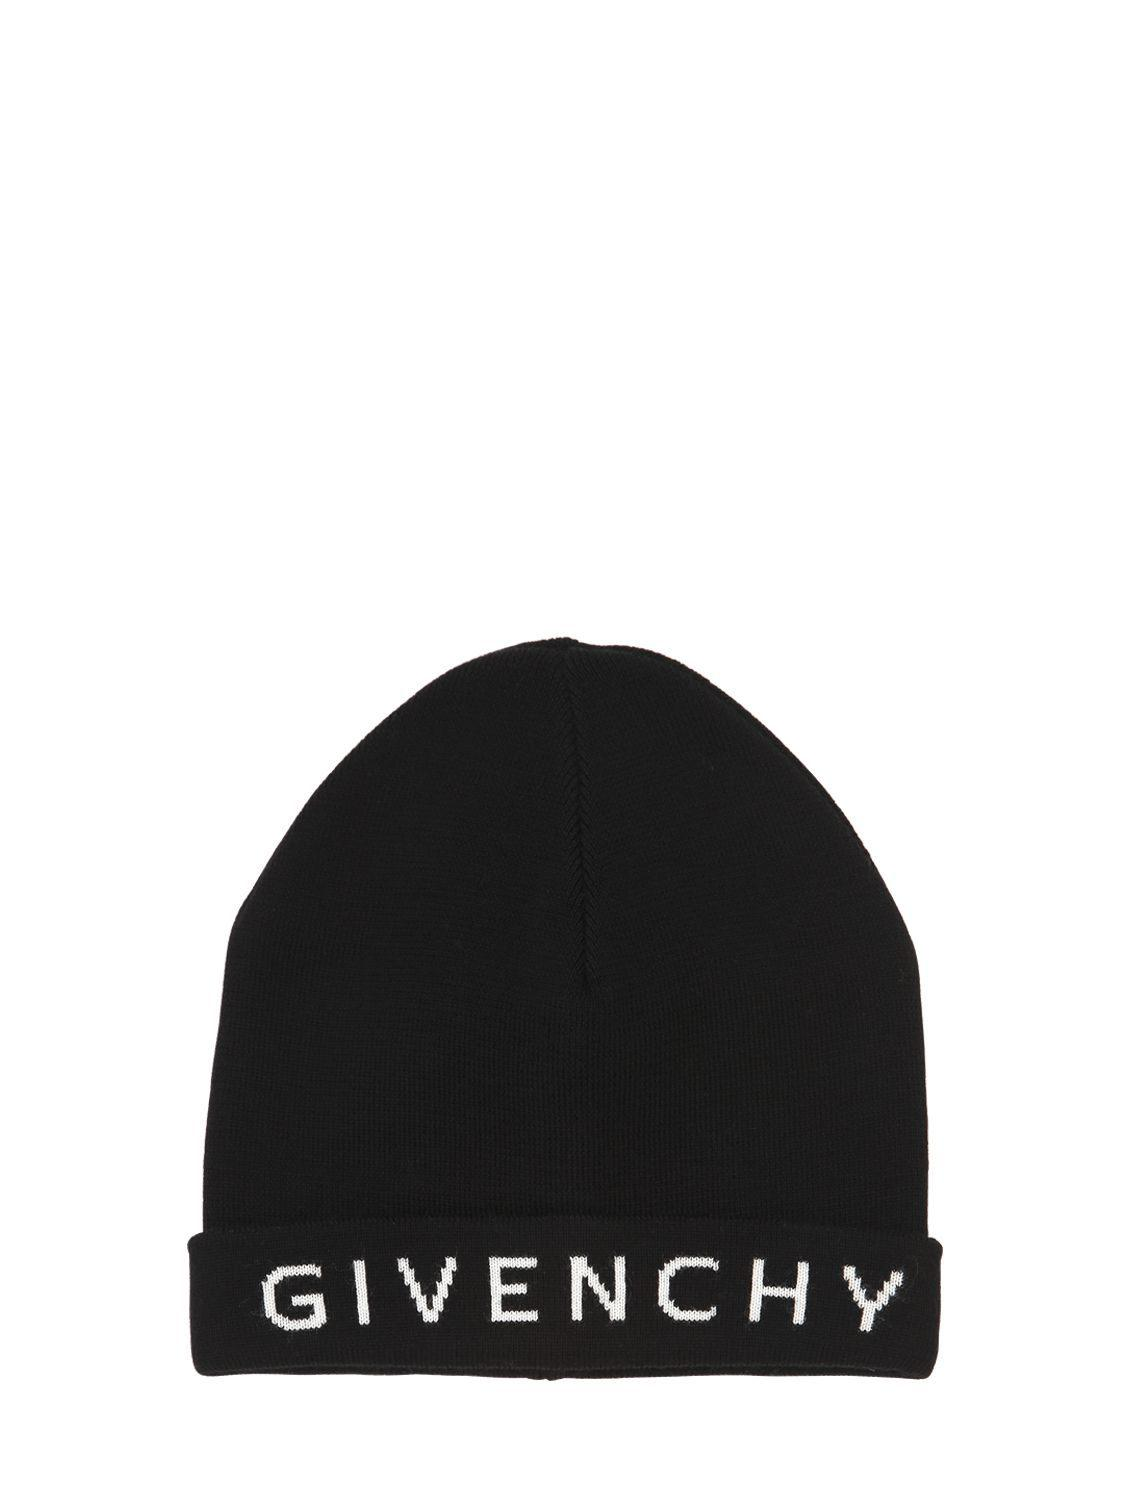 d84add282a5 Lyst - Givenchy Logo Print Wool Beanie Hat in Black - Save ...